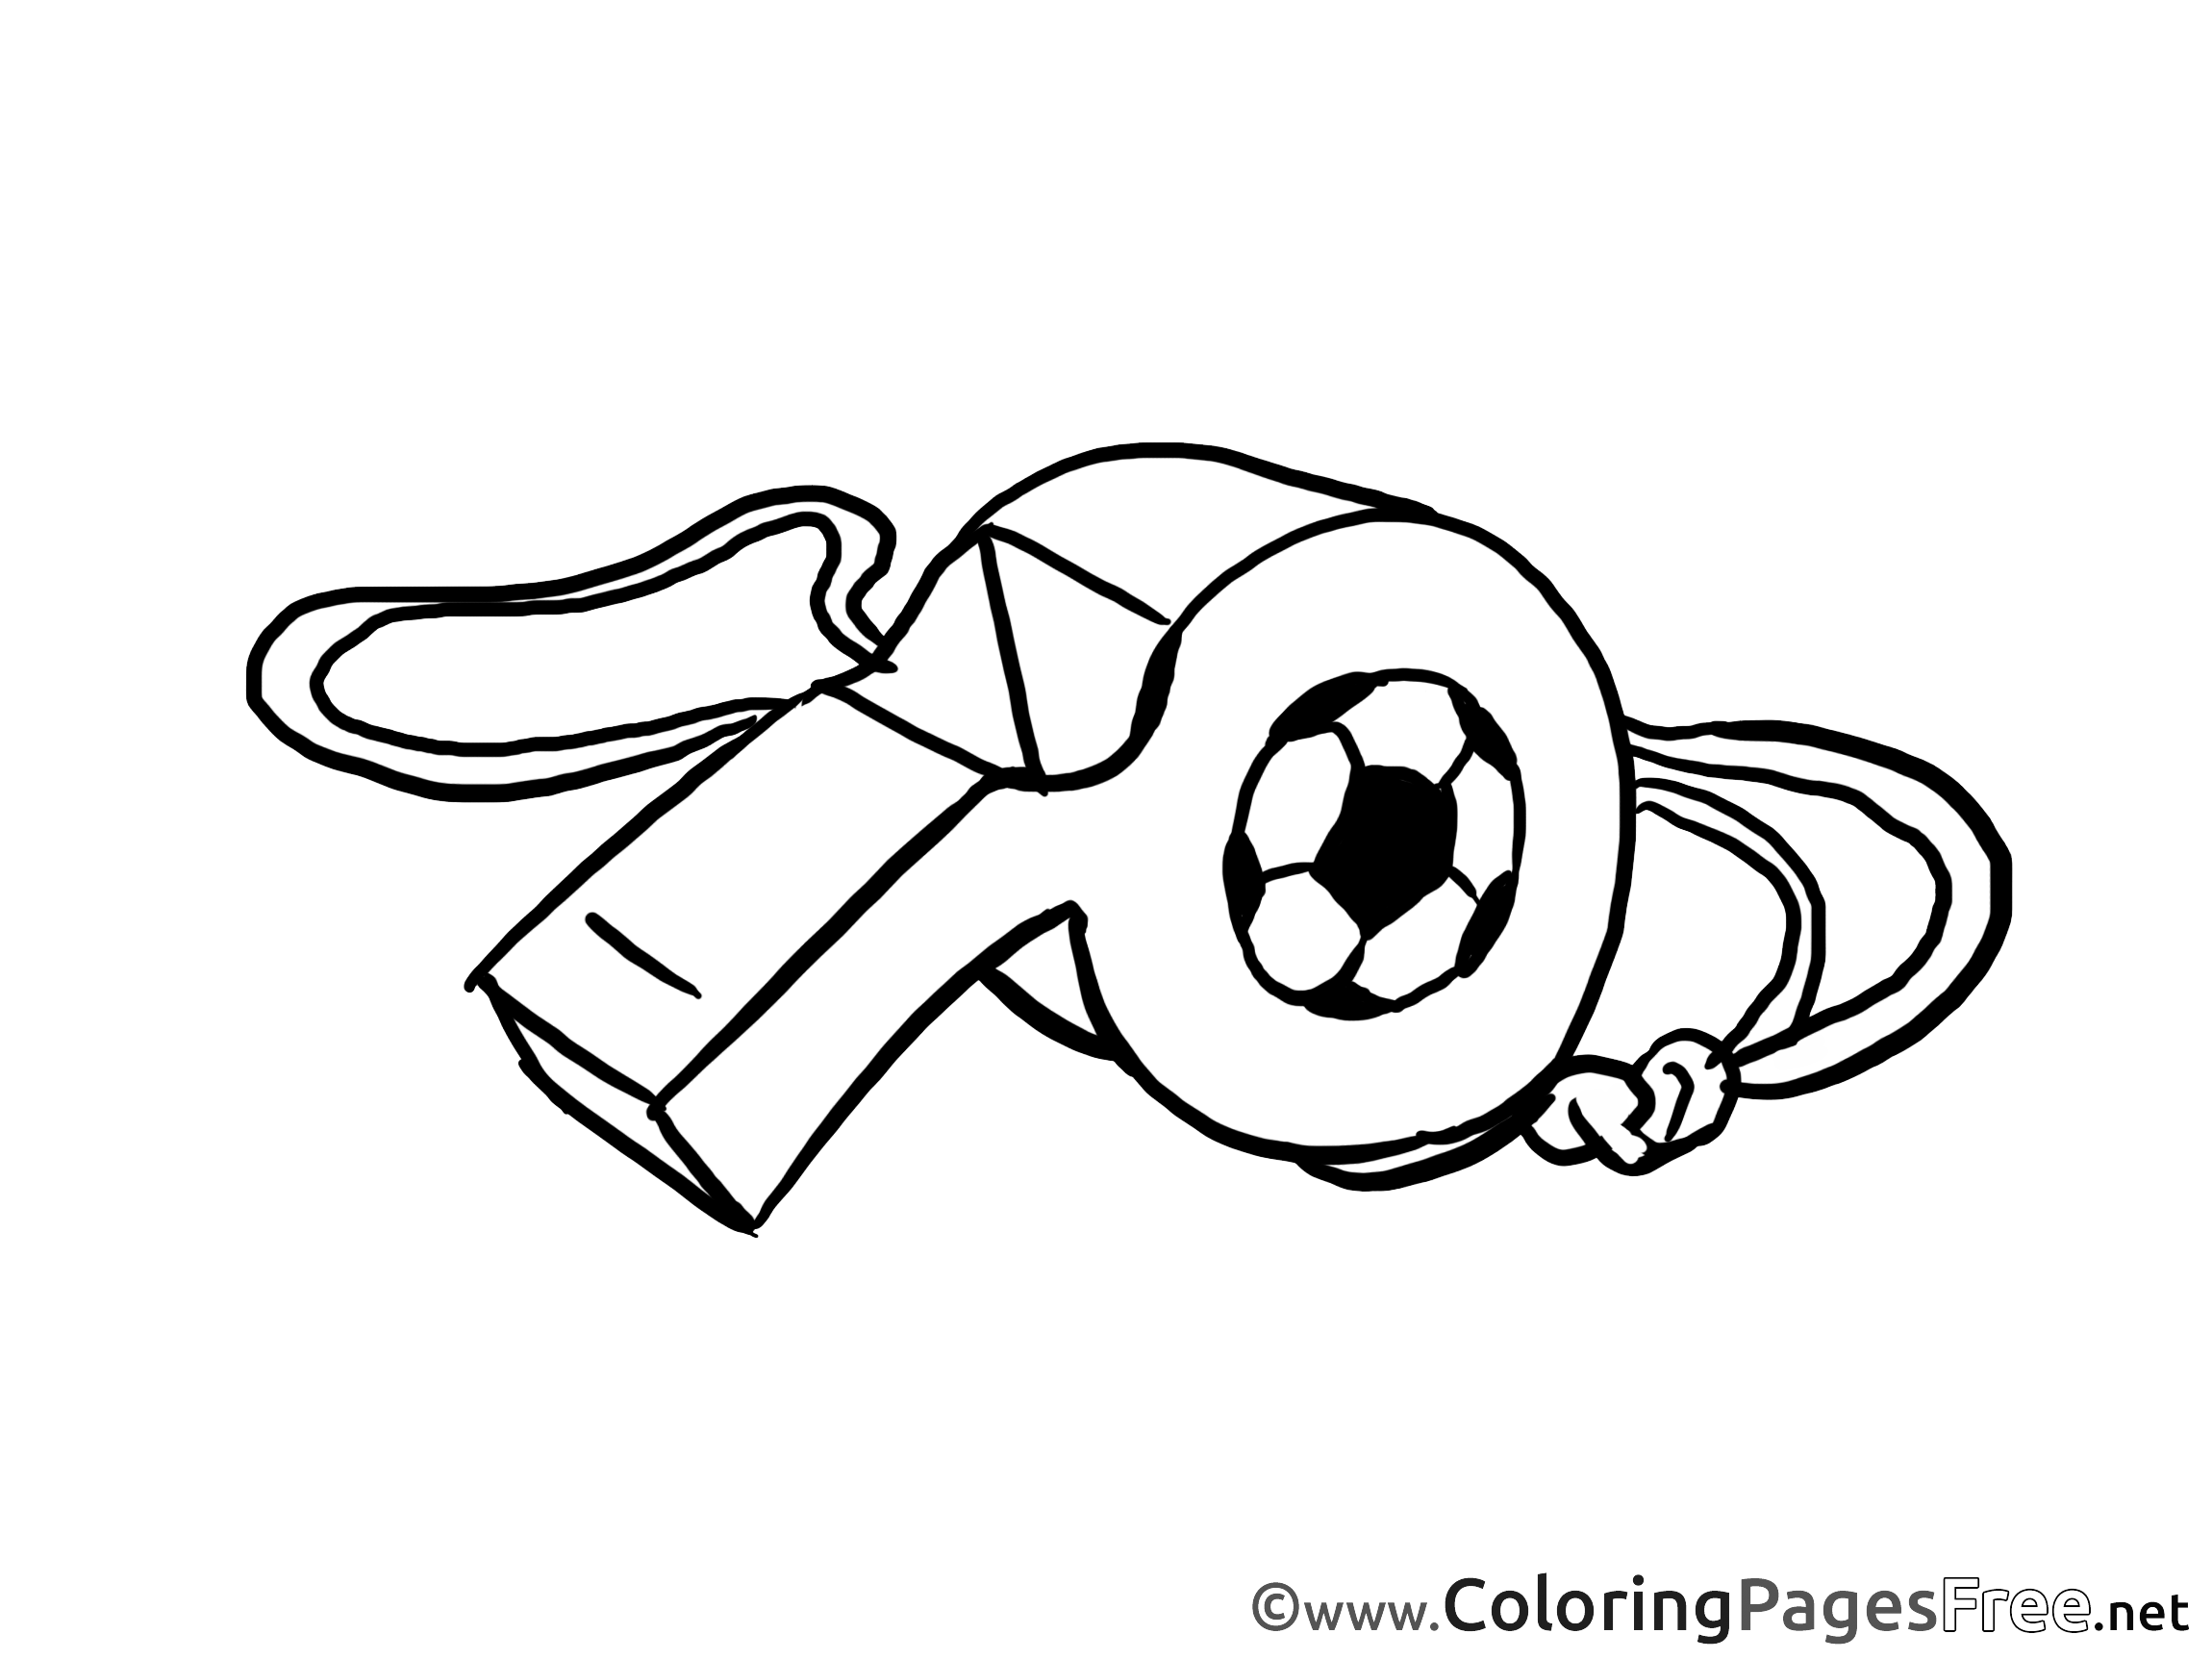 Whistle Colouring Soccer